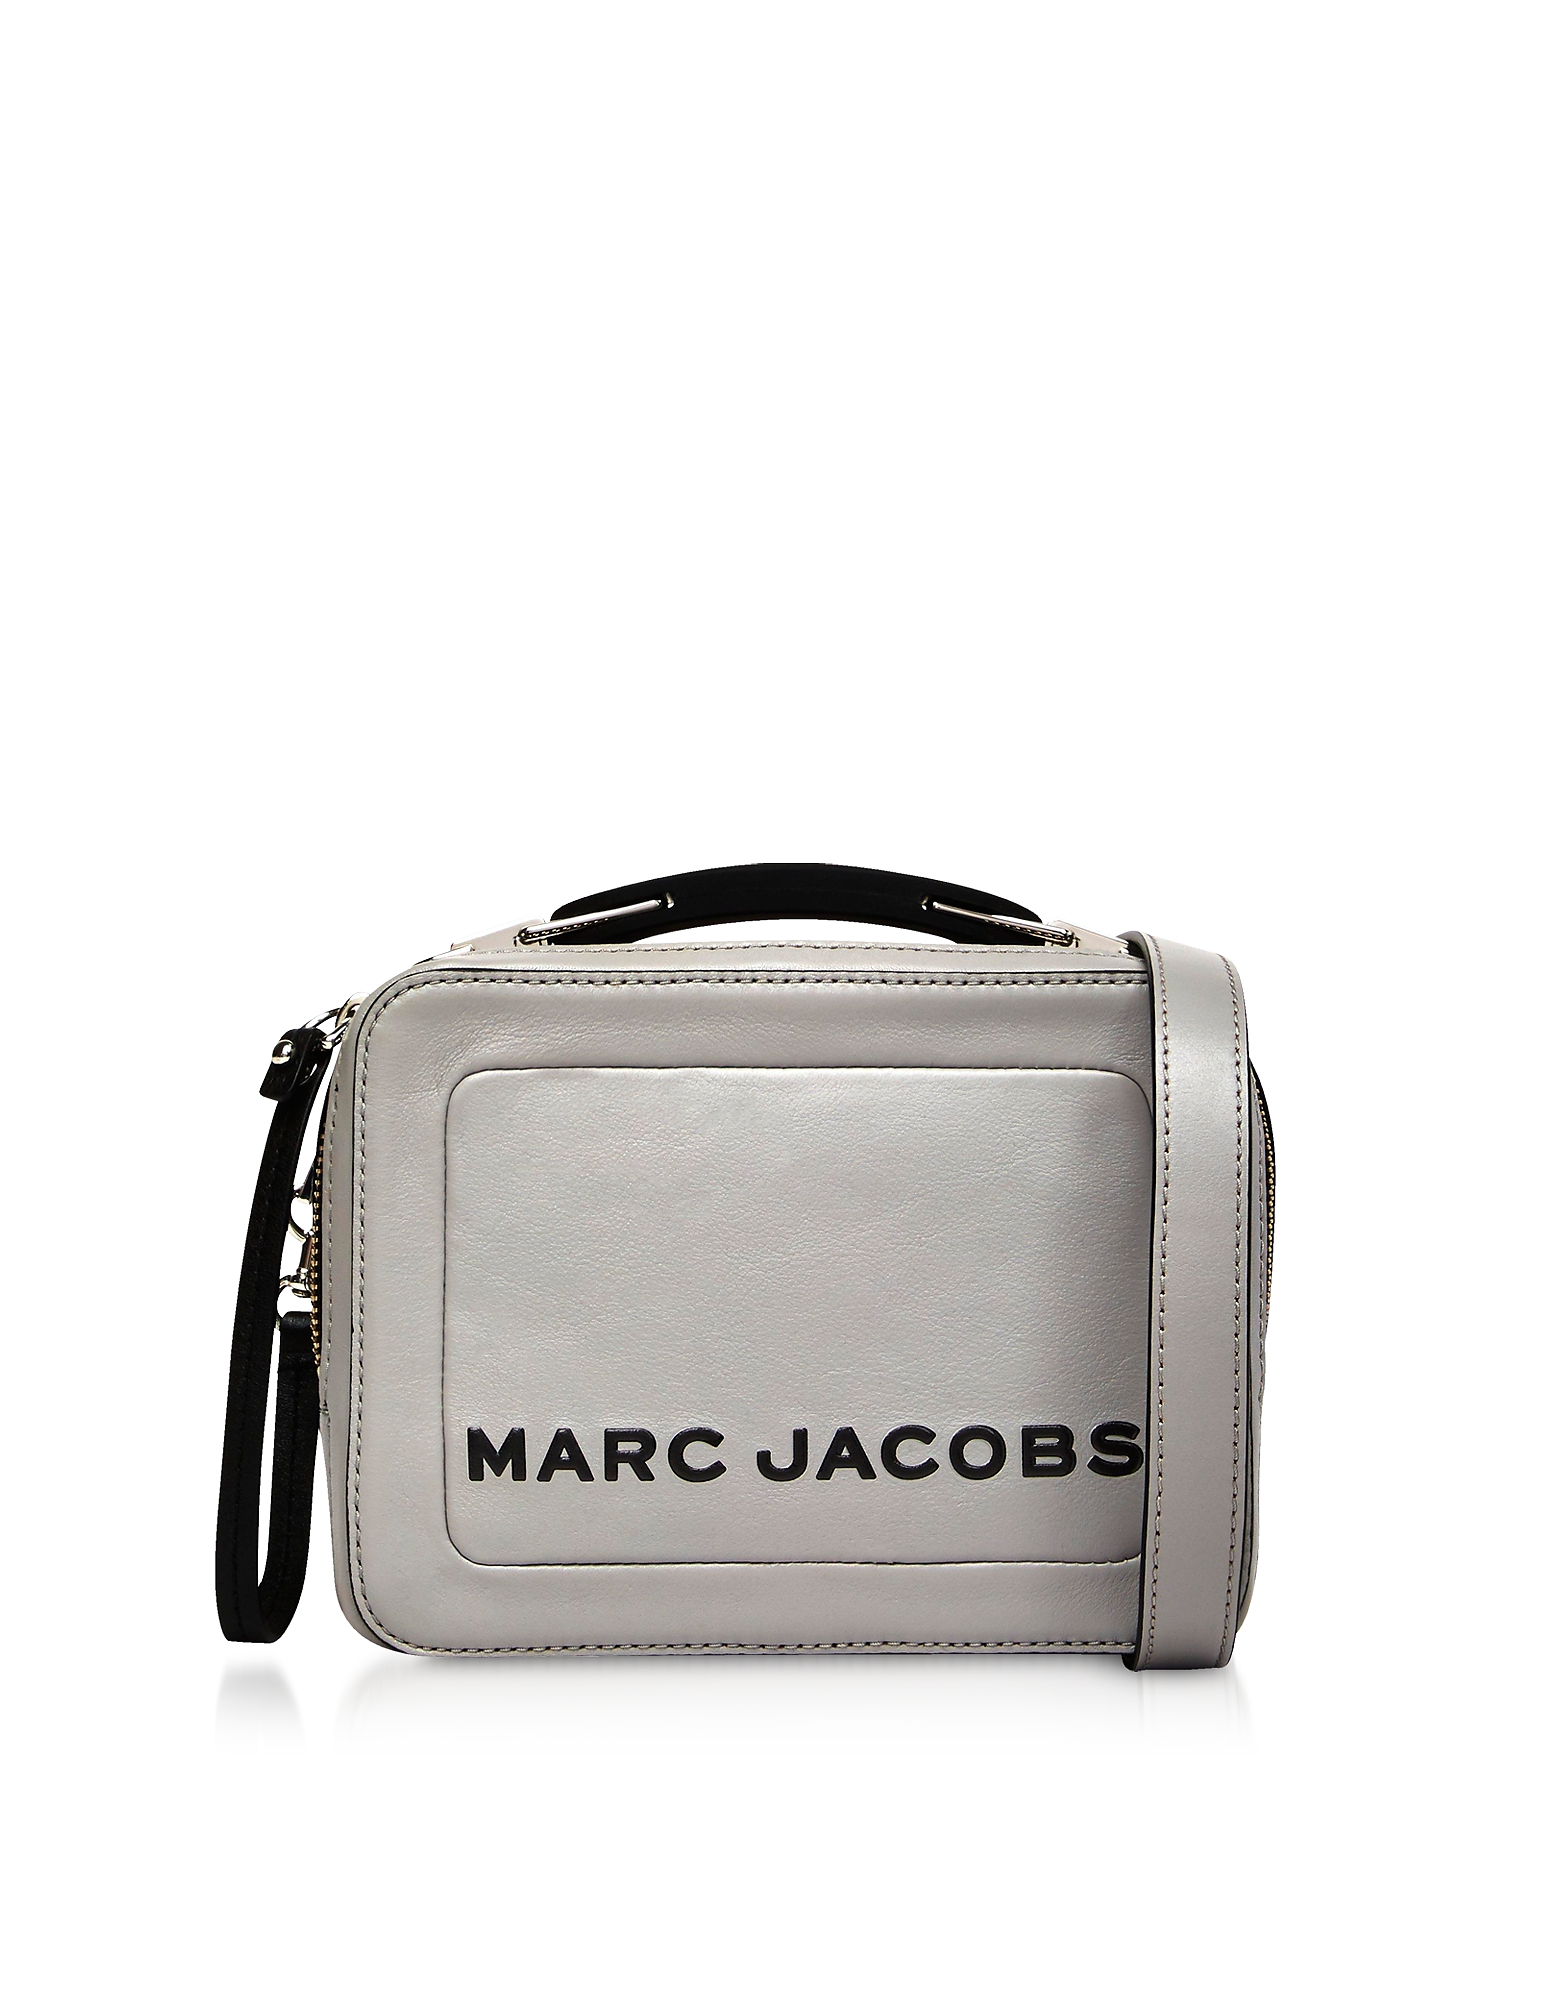 Marc Jacobs Handbags, The Mini Box 20 Satchel Bag